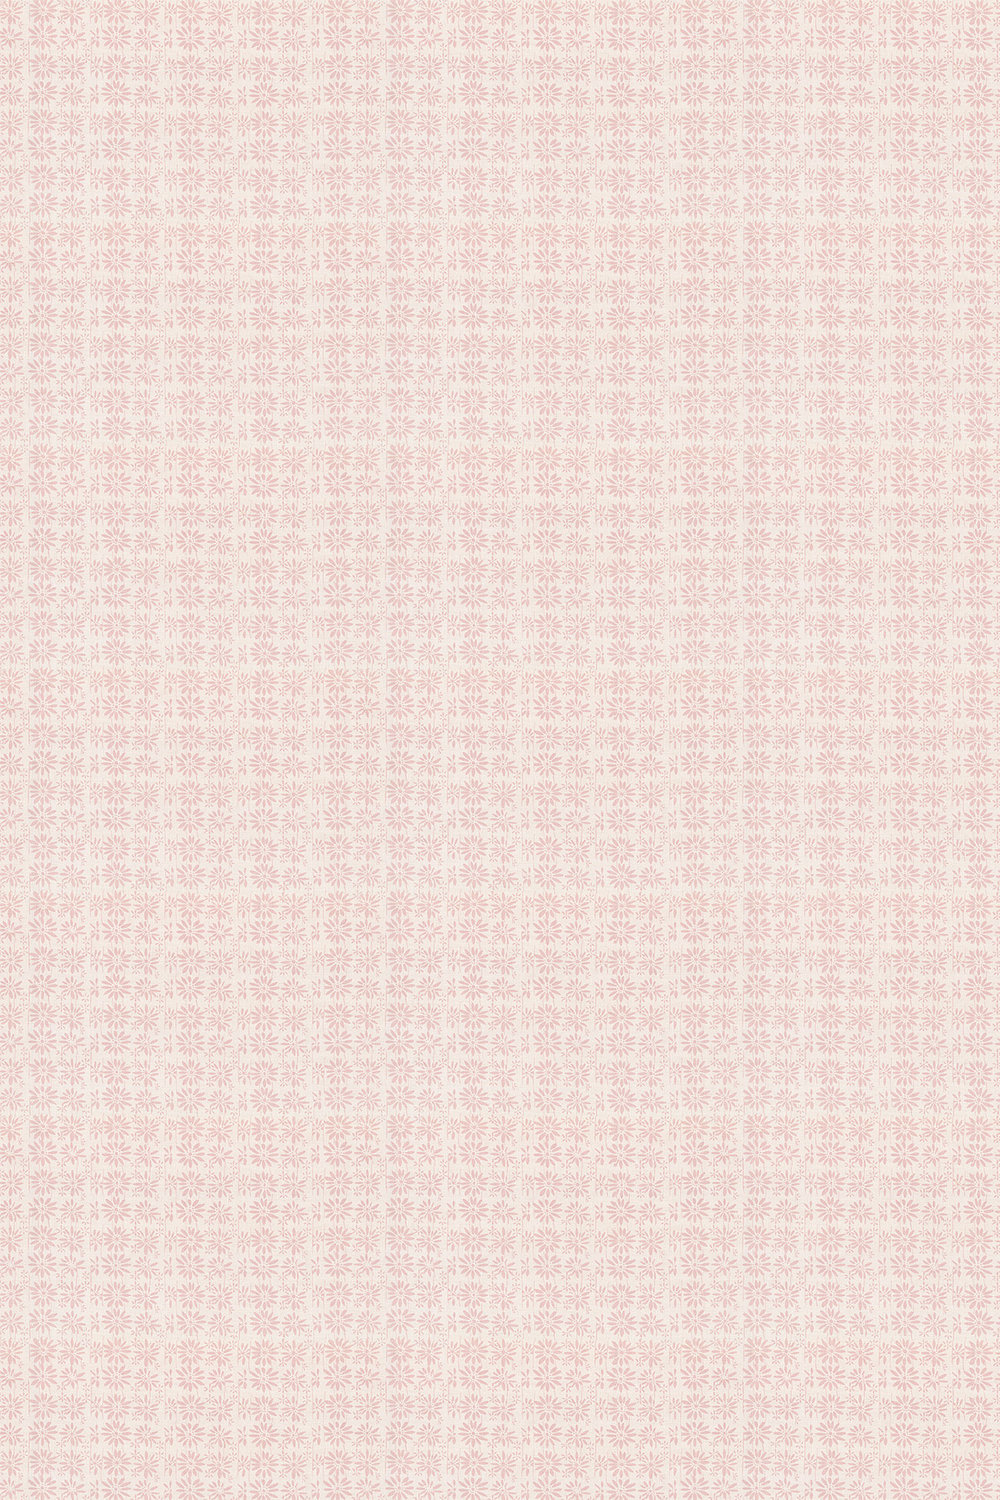 Linen Union Daisy 03 Fabric - Pink - by Belynda Sharples